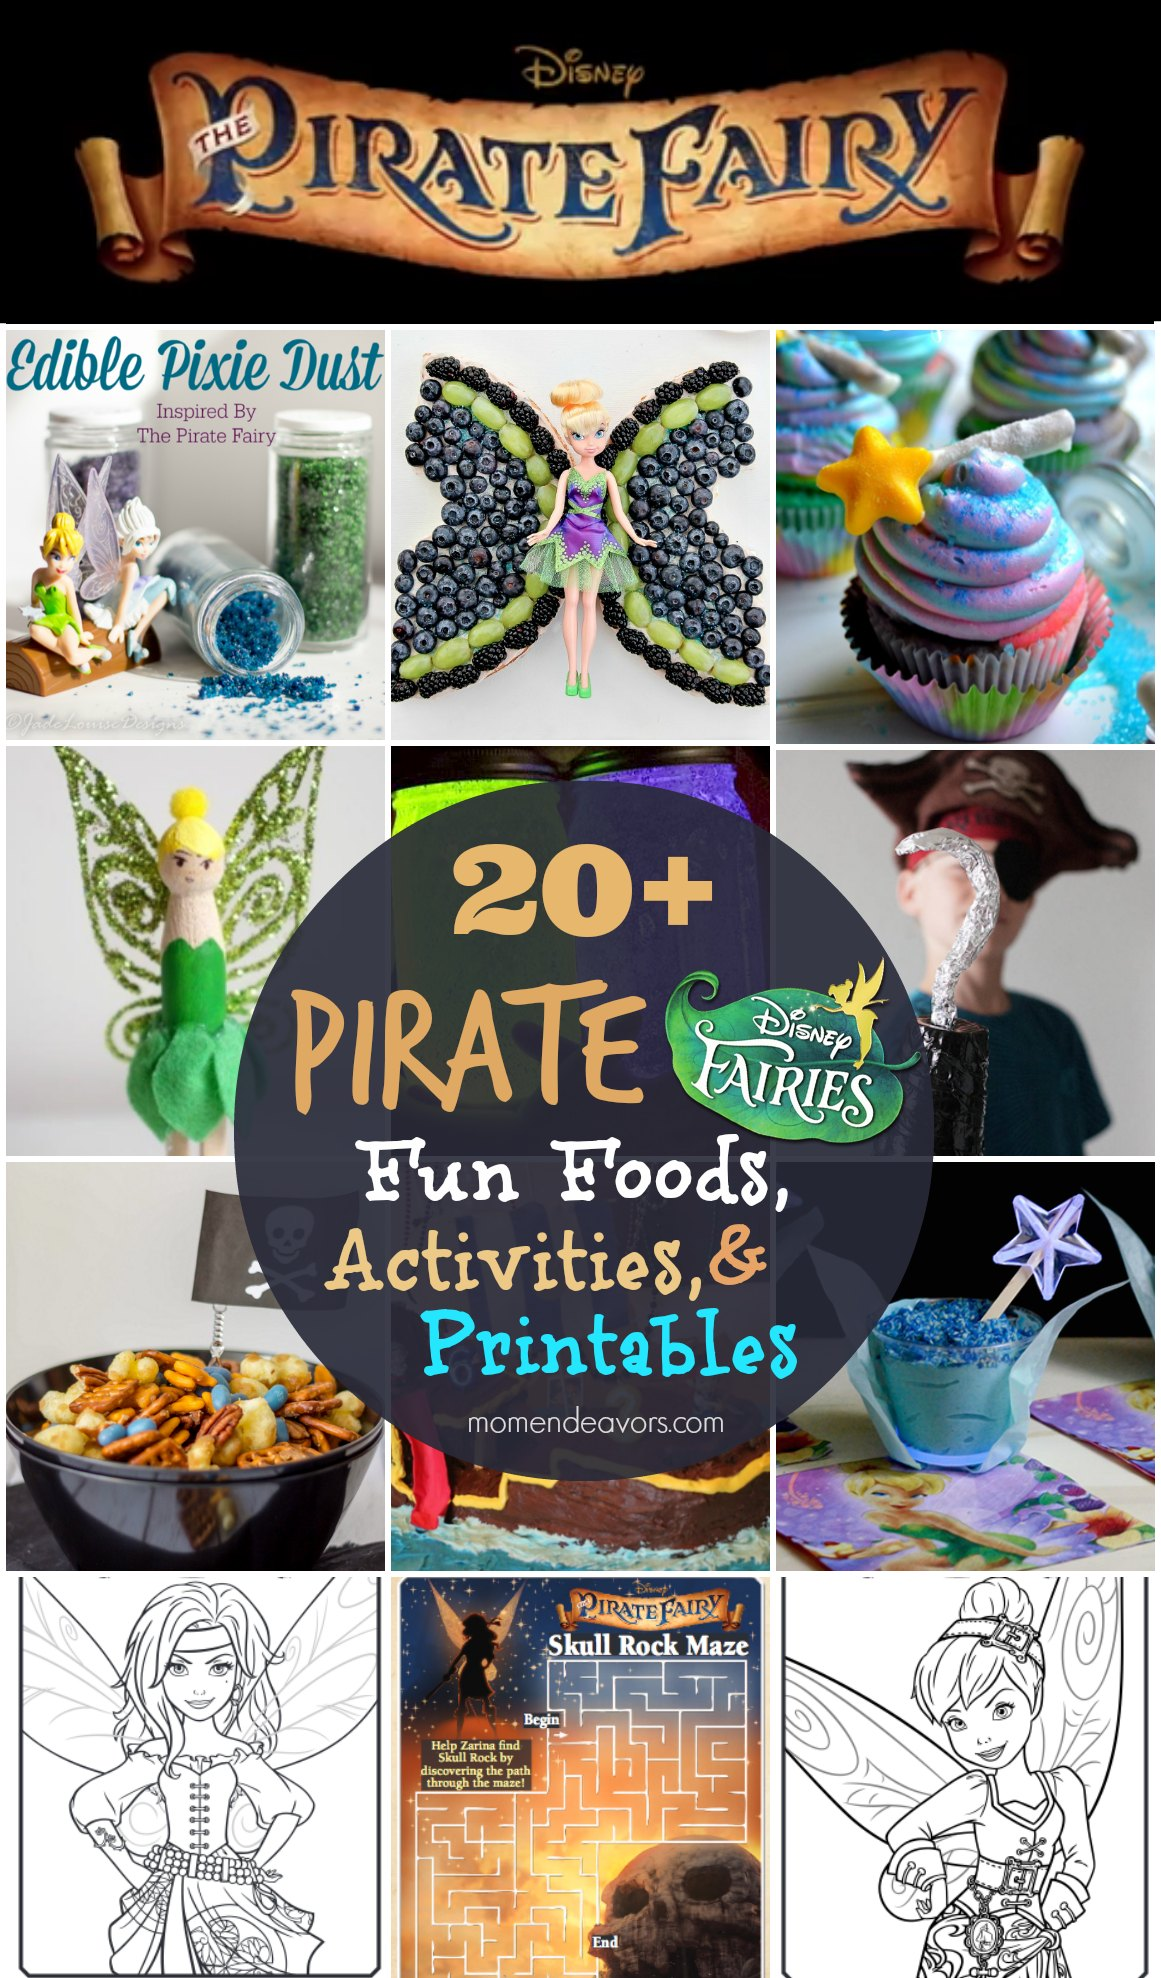 Disneys The Pirate Fairy Fun Foods Activities And Printables